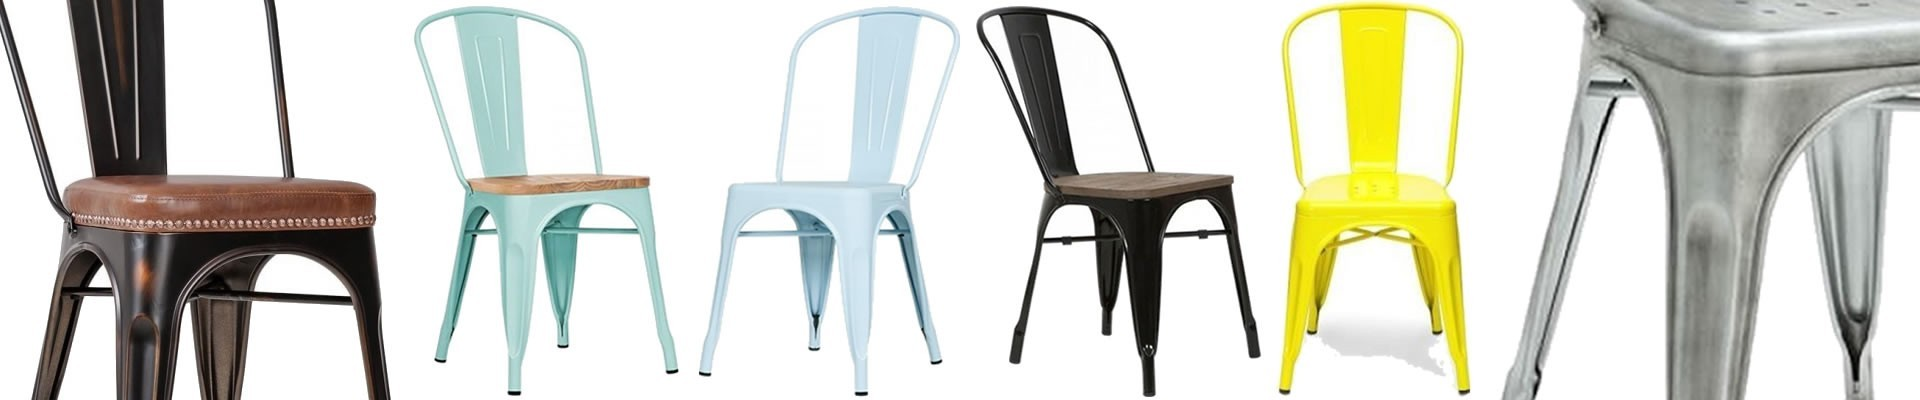 Metal Chairs   Metal Dining Chairs